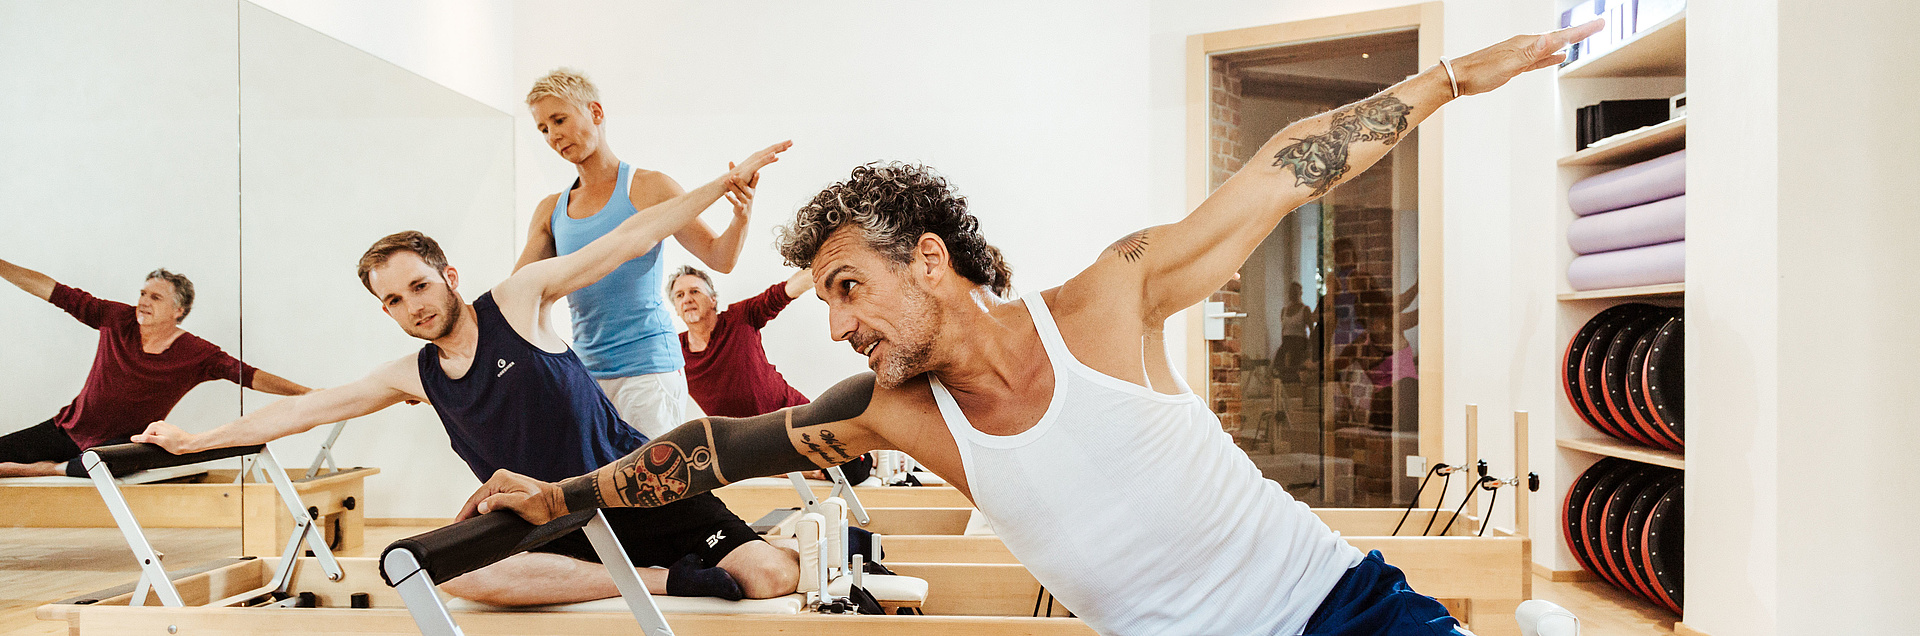 Trainingsgruppe im Pilates-Studio